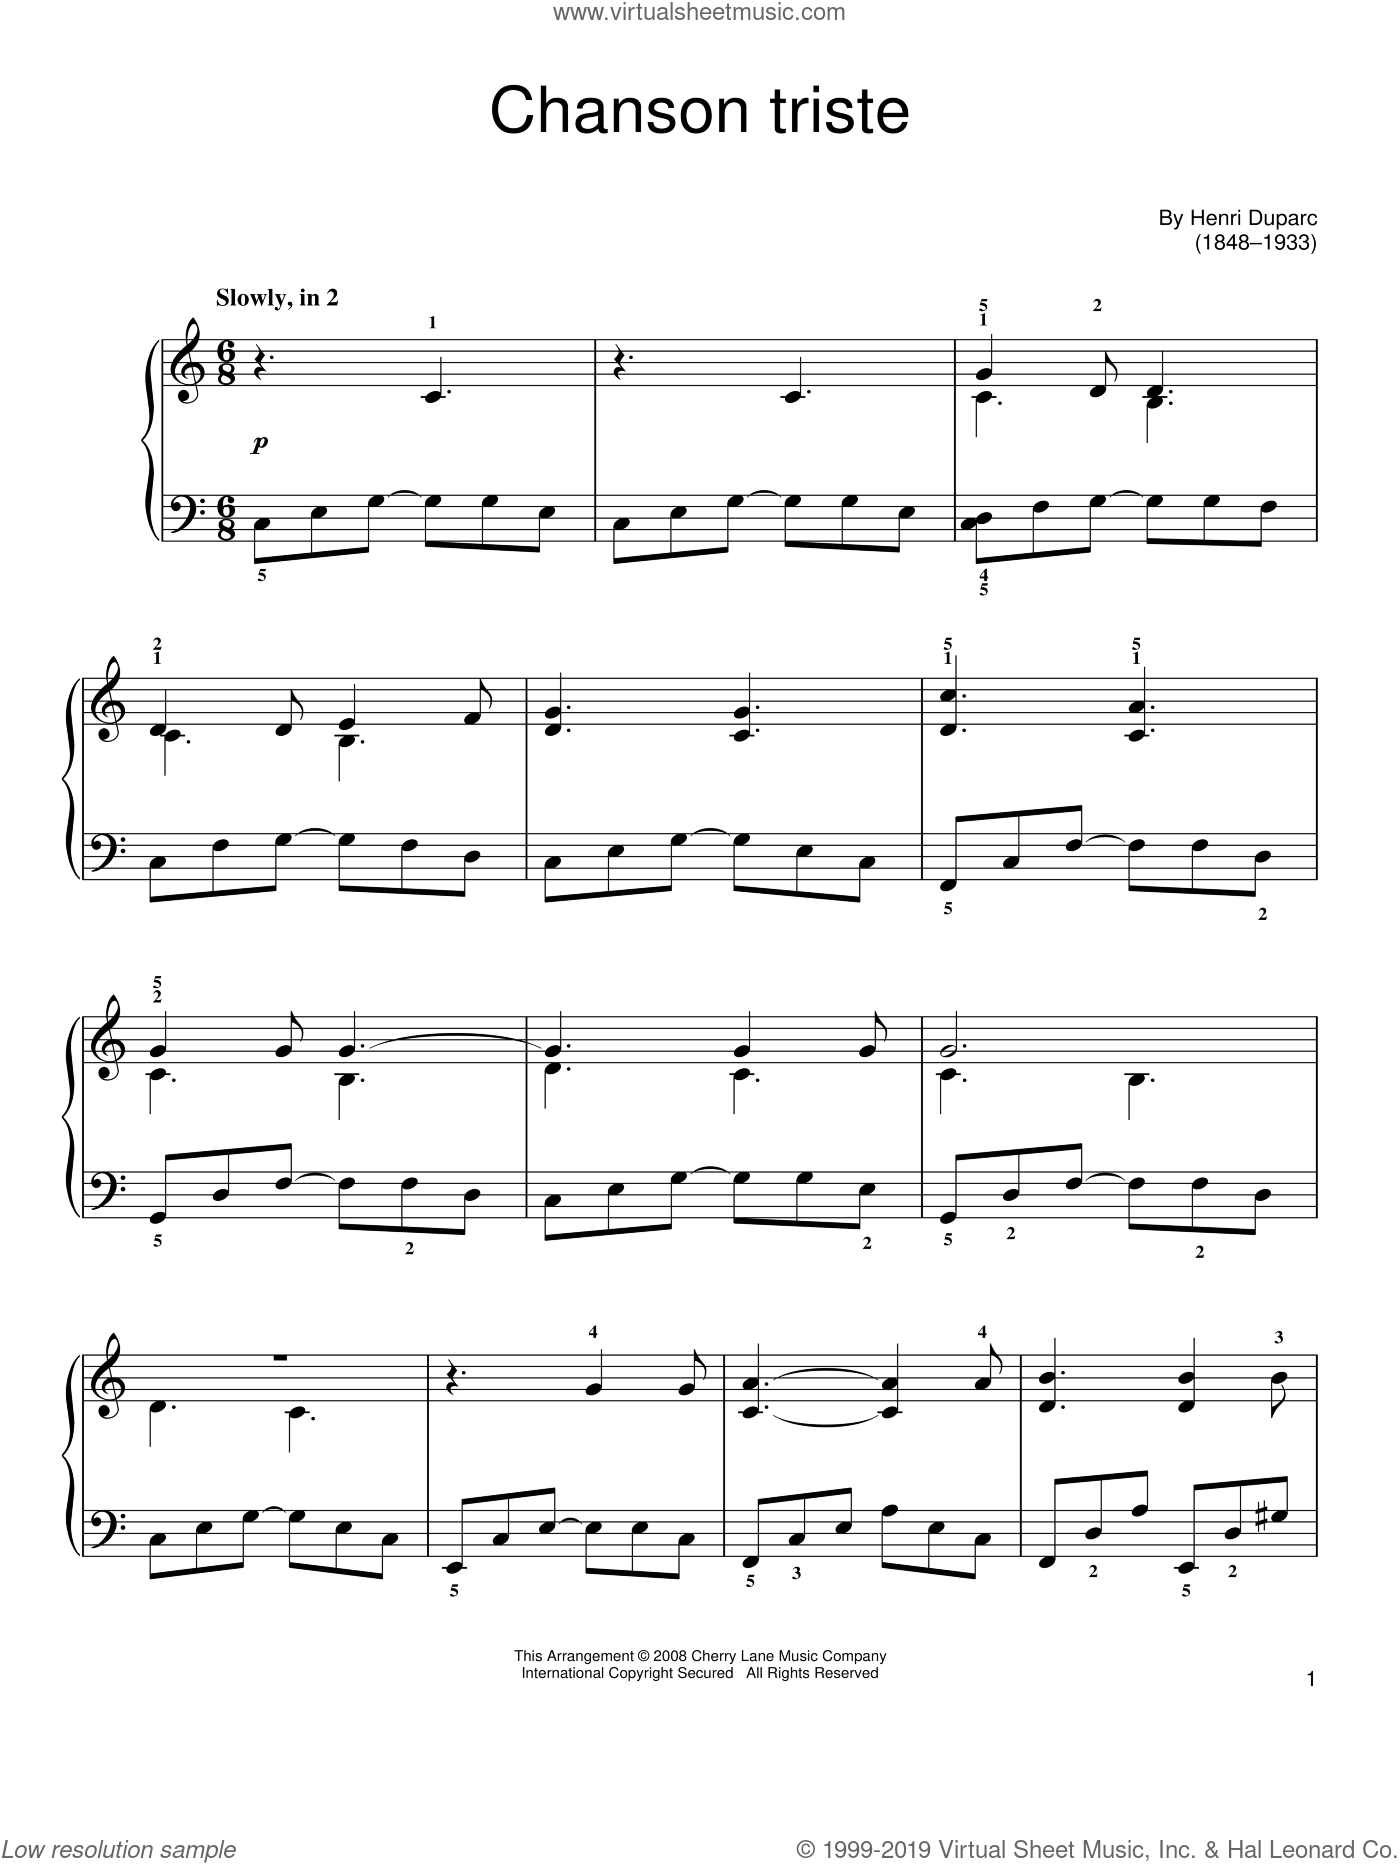 Chanson Triste sheet music for piano solo (chords) by Henri Duparc